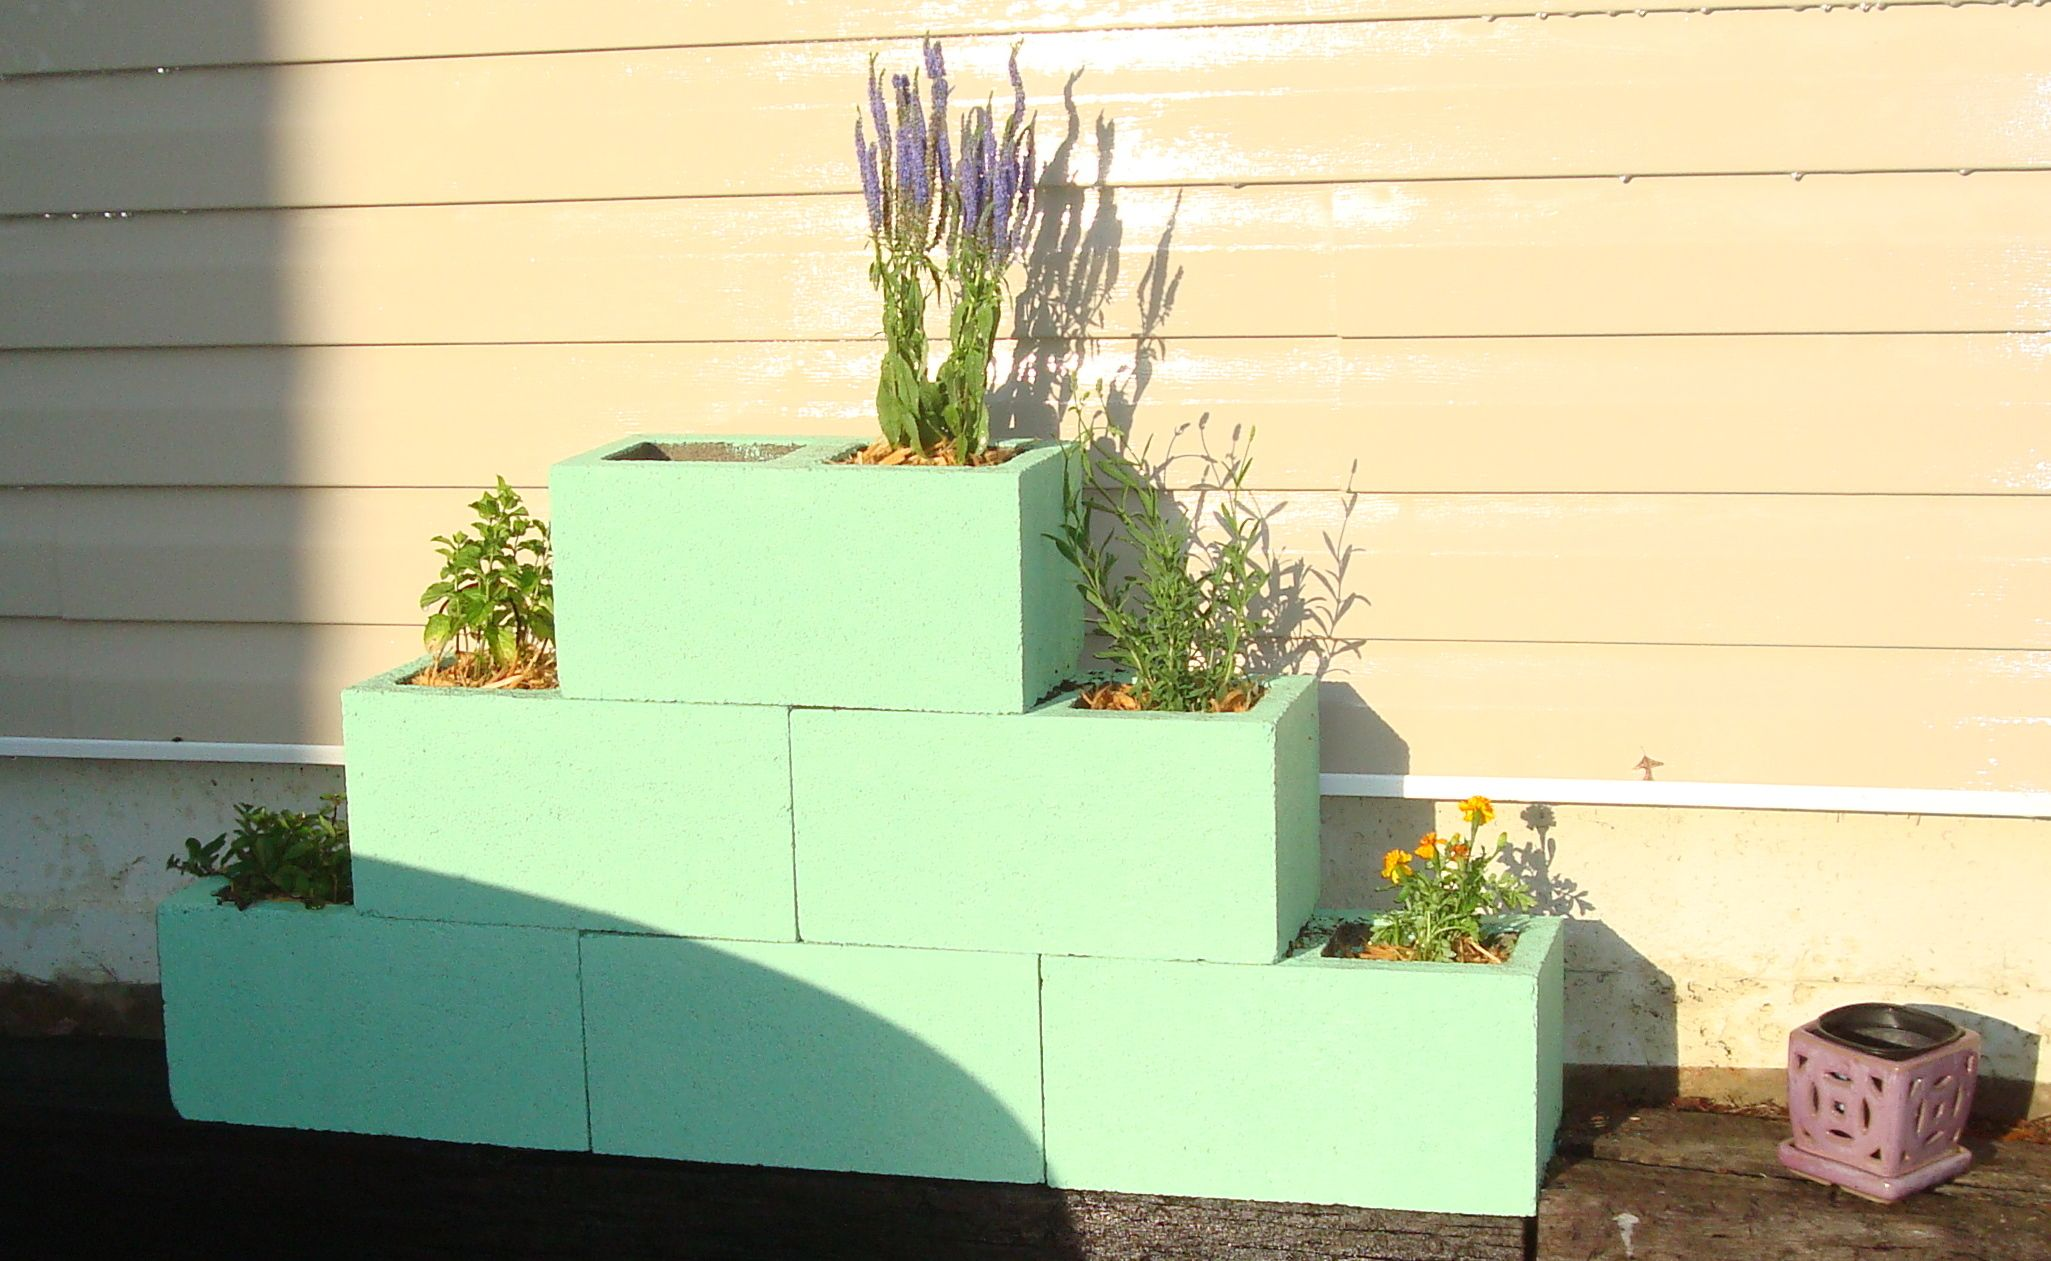 Cinder block planter in mint green | Cinder blocks | Pinterest ...